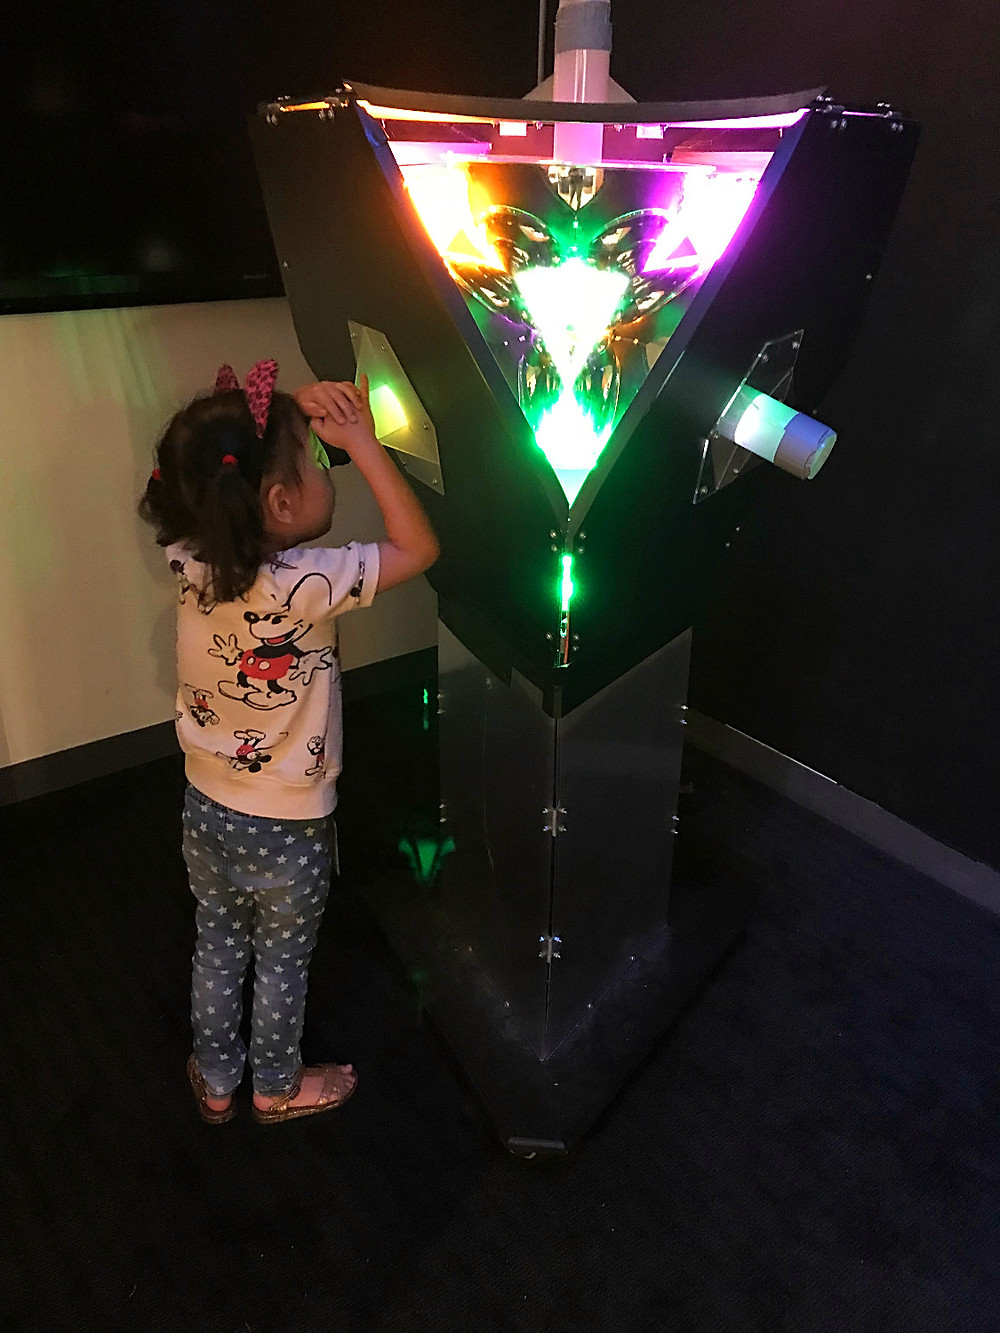 MoMath, The National Museum of Mathematics, children's museum, STEM fo kids, STEAM for kids, things to do this summer, nyc kids, nyc summer, curious g and me, tetrasphere